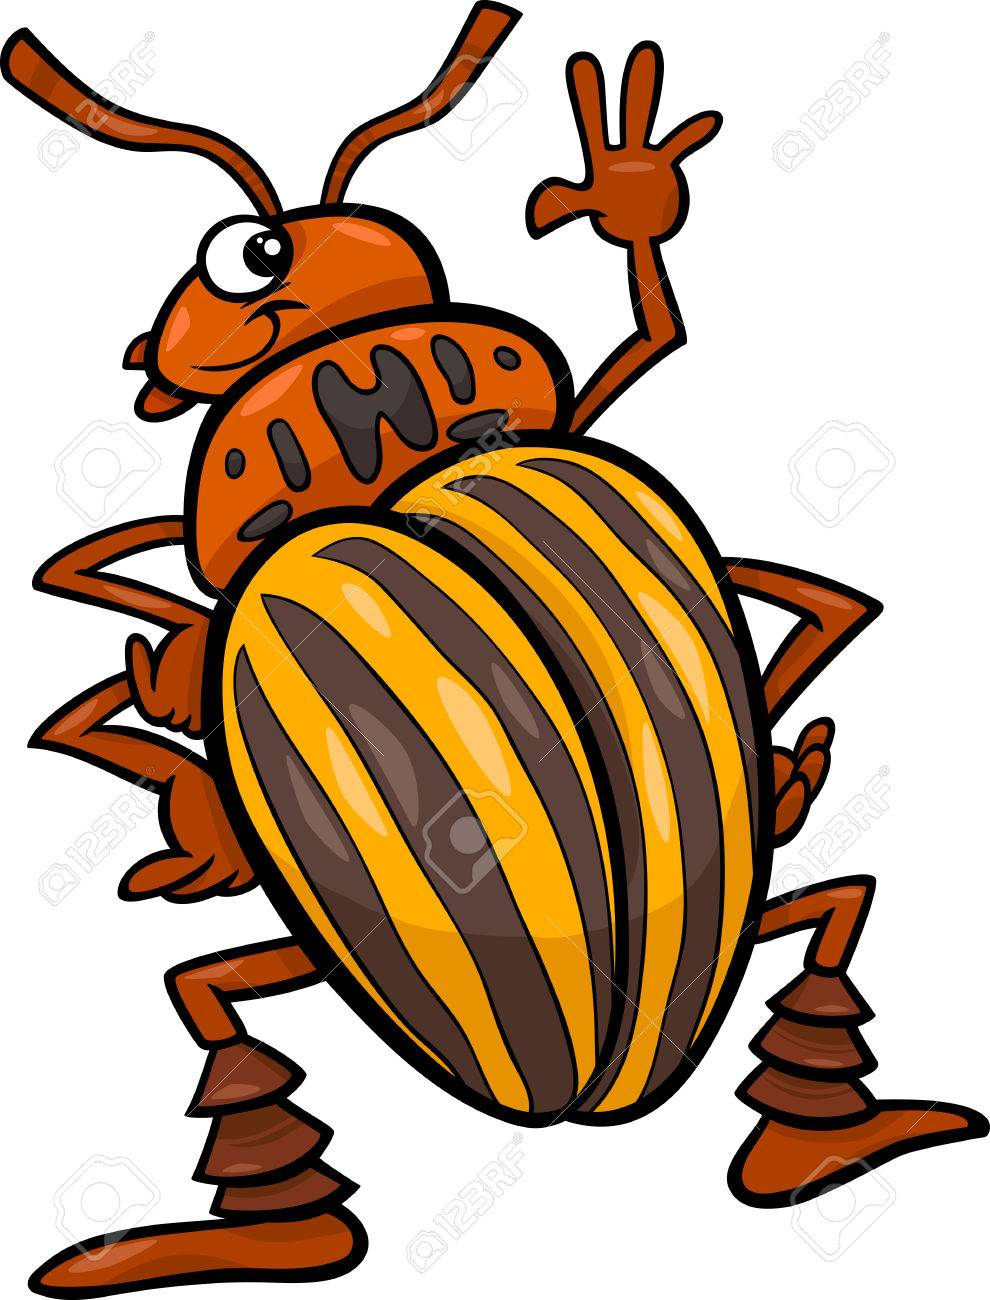 cartoon illustration of funny colorado potato beetle insect